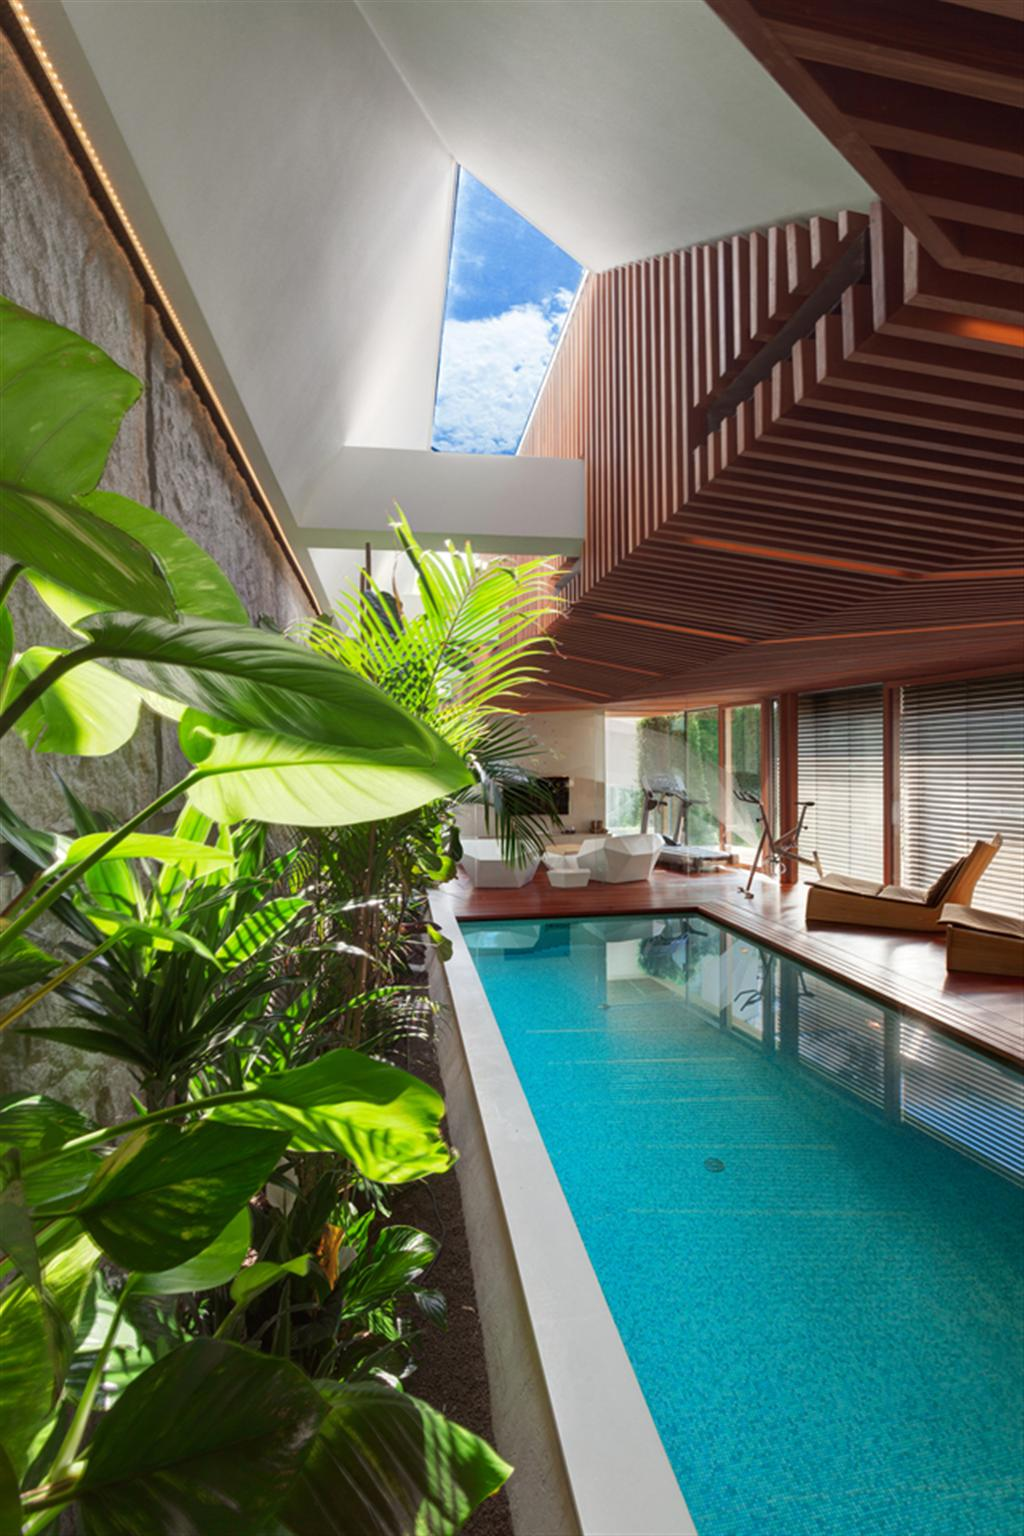 Chill-out and absolute Relaxation: The Spa Home 6